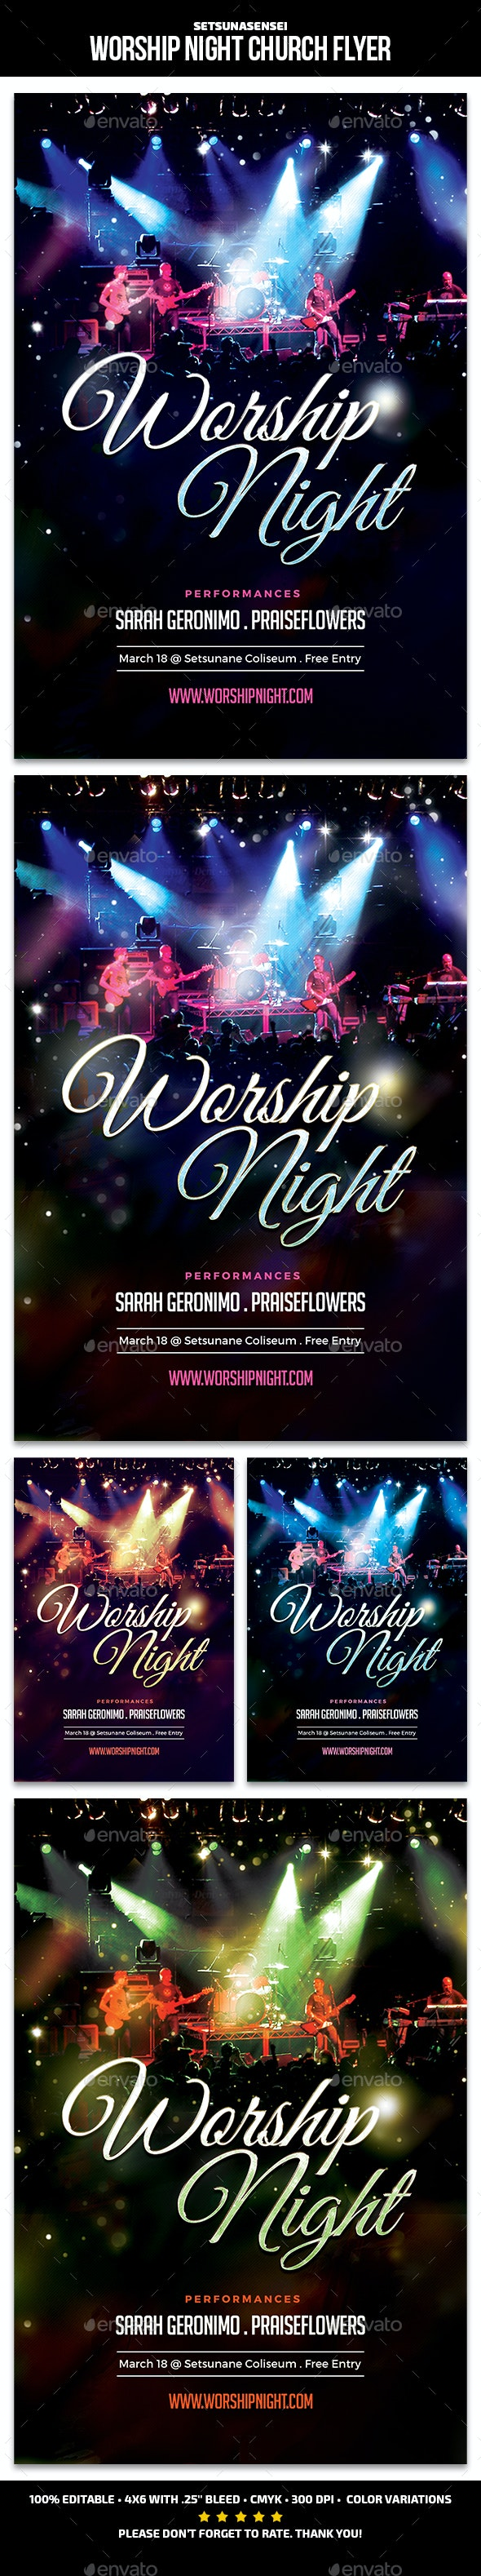 Worship Night Church Flyer - Church Flyers